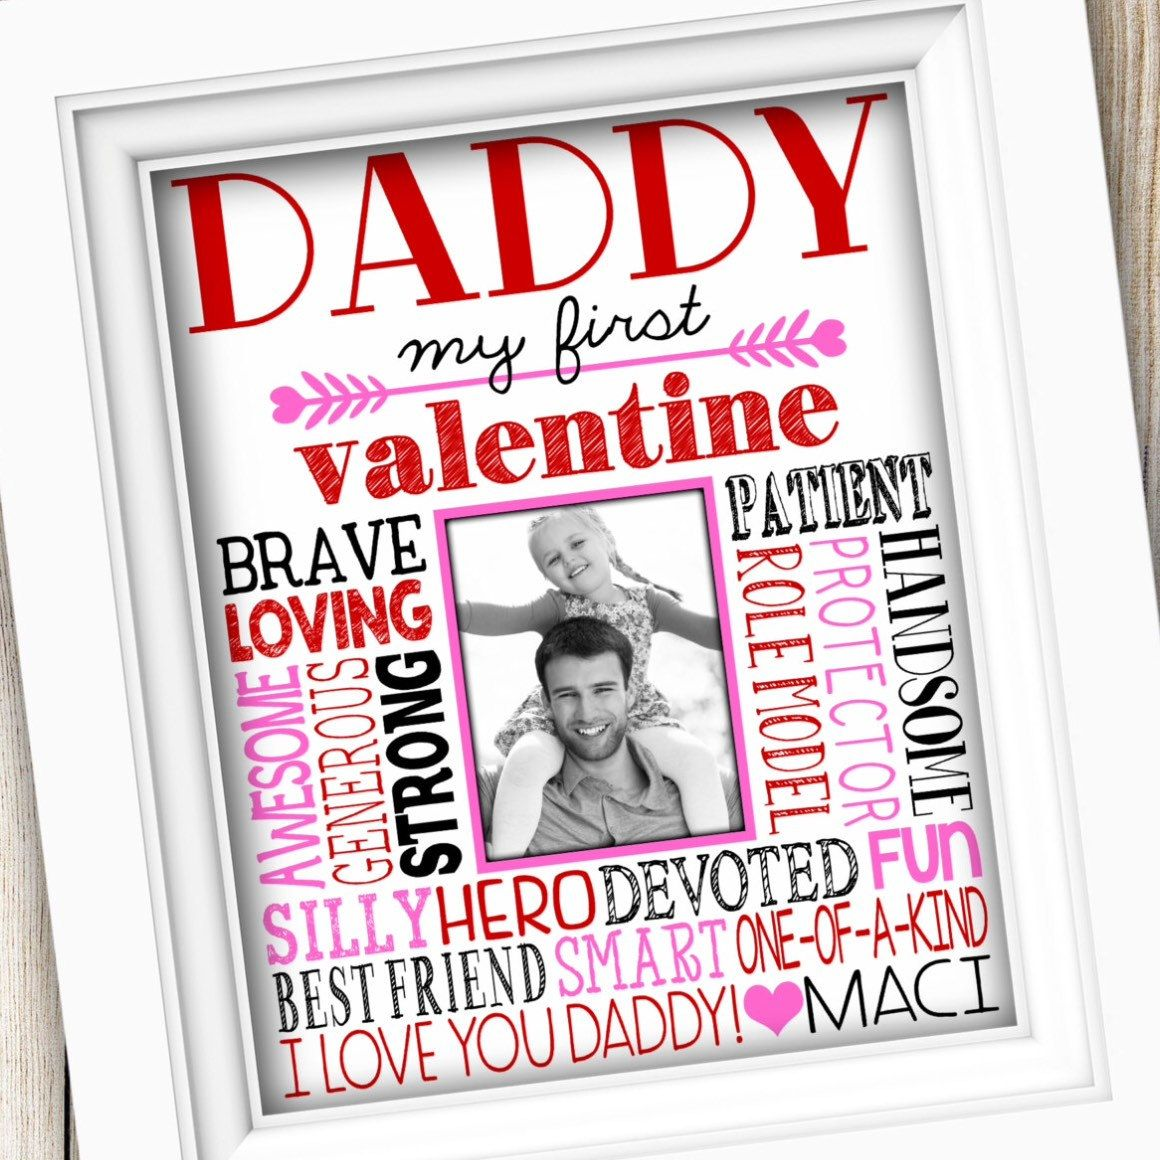 valentines day gift for dad daddy valentines day printable valentines gift for daddy gift for dad gift from daughter last minute - Valentine Gift For Daughter